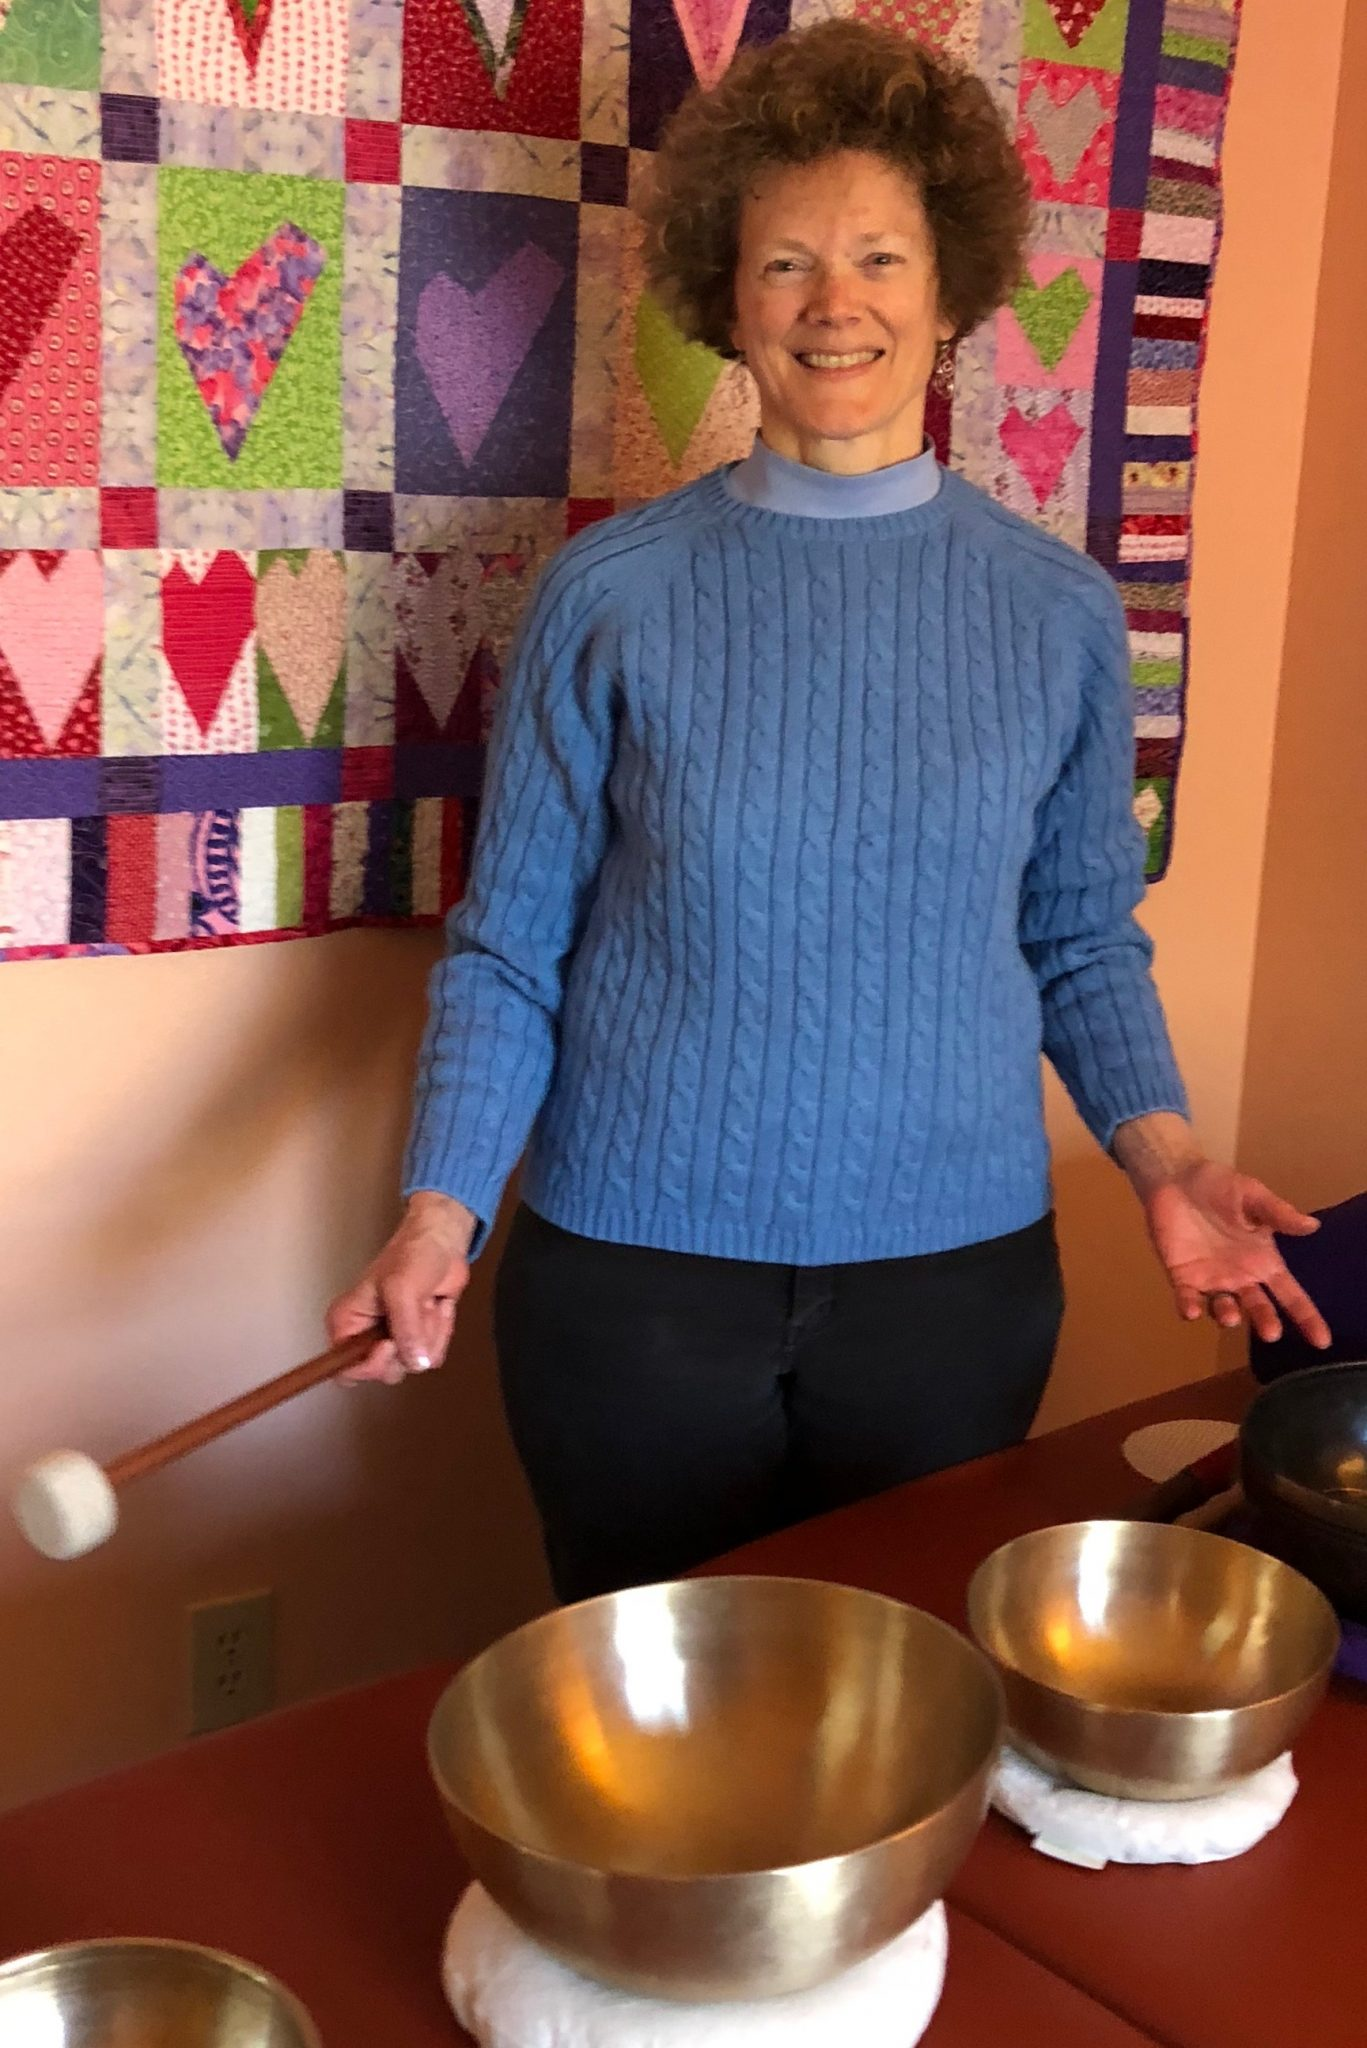 Margaret posing with bowls